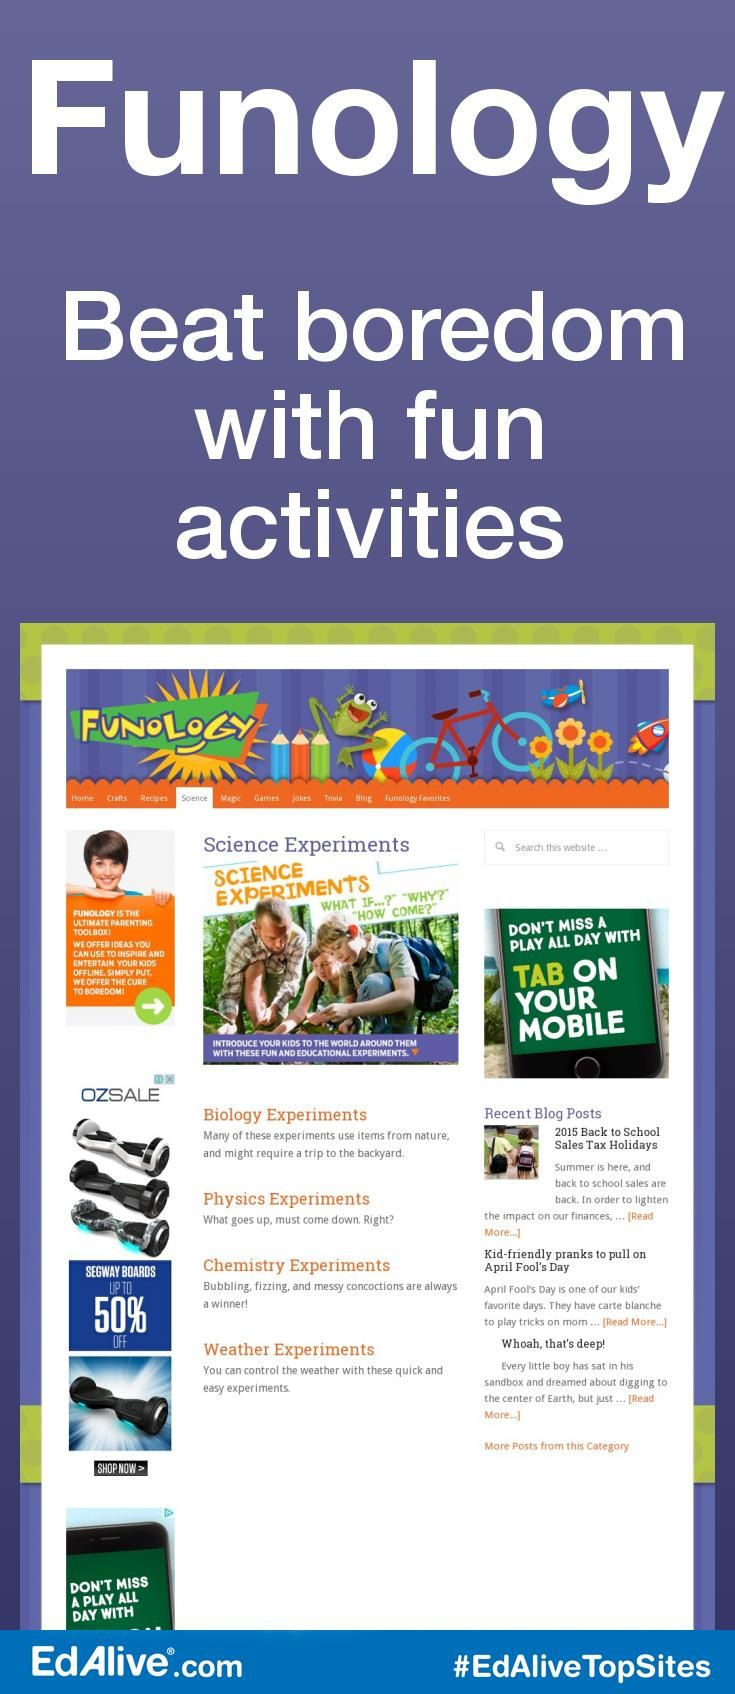 Beat boredom with fun activities | Helps get kids interested them in science by providing them with games, recipes, experiments, and arts and crafts projects. Funology is the ultimate parenting toolbox! It offers ideas you can use to inspire and entertain your kids off line. Simply put, we offer the cure to boredom! #Science #EdAliveTopSites